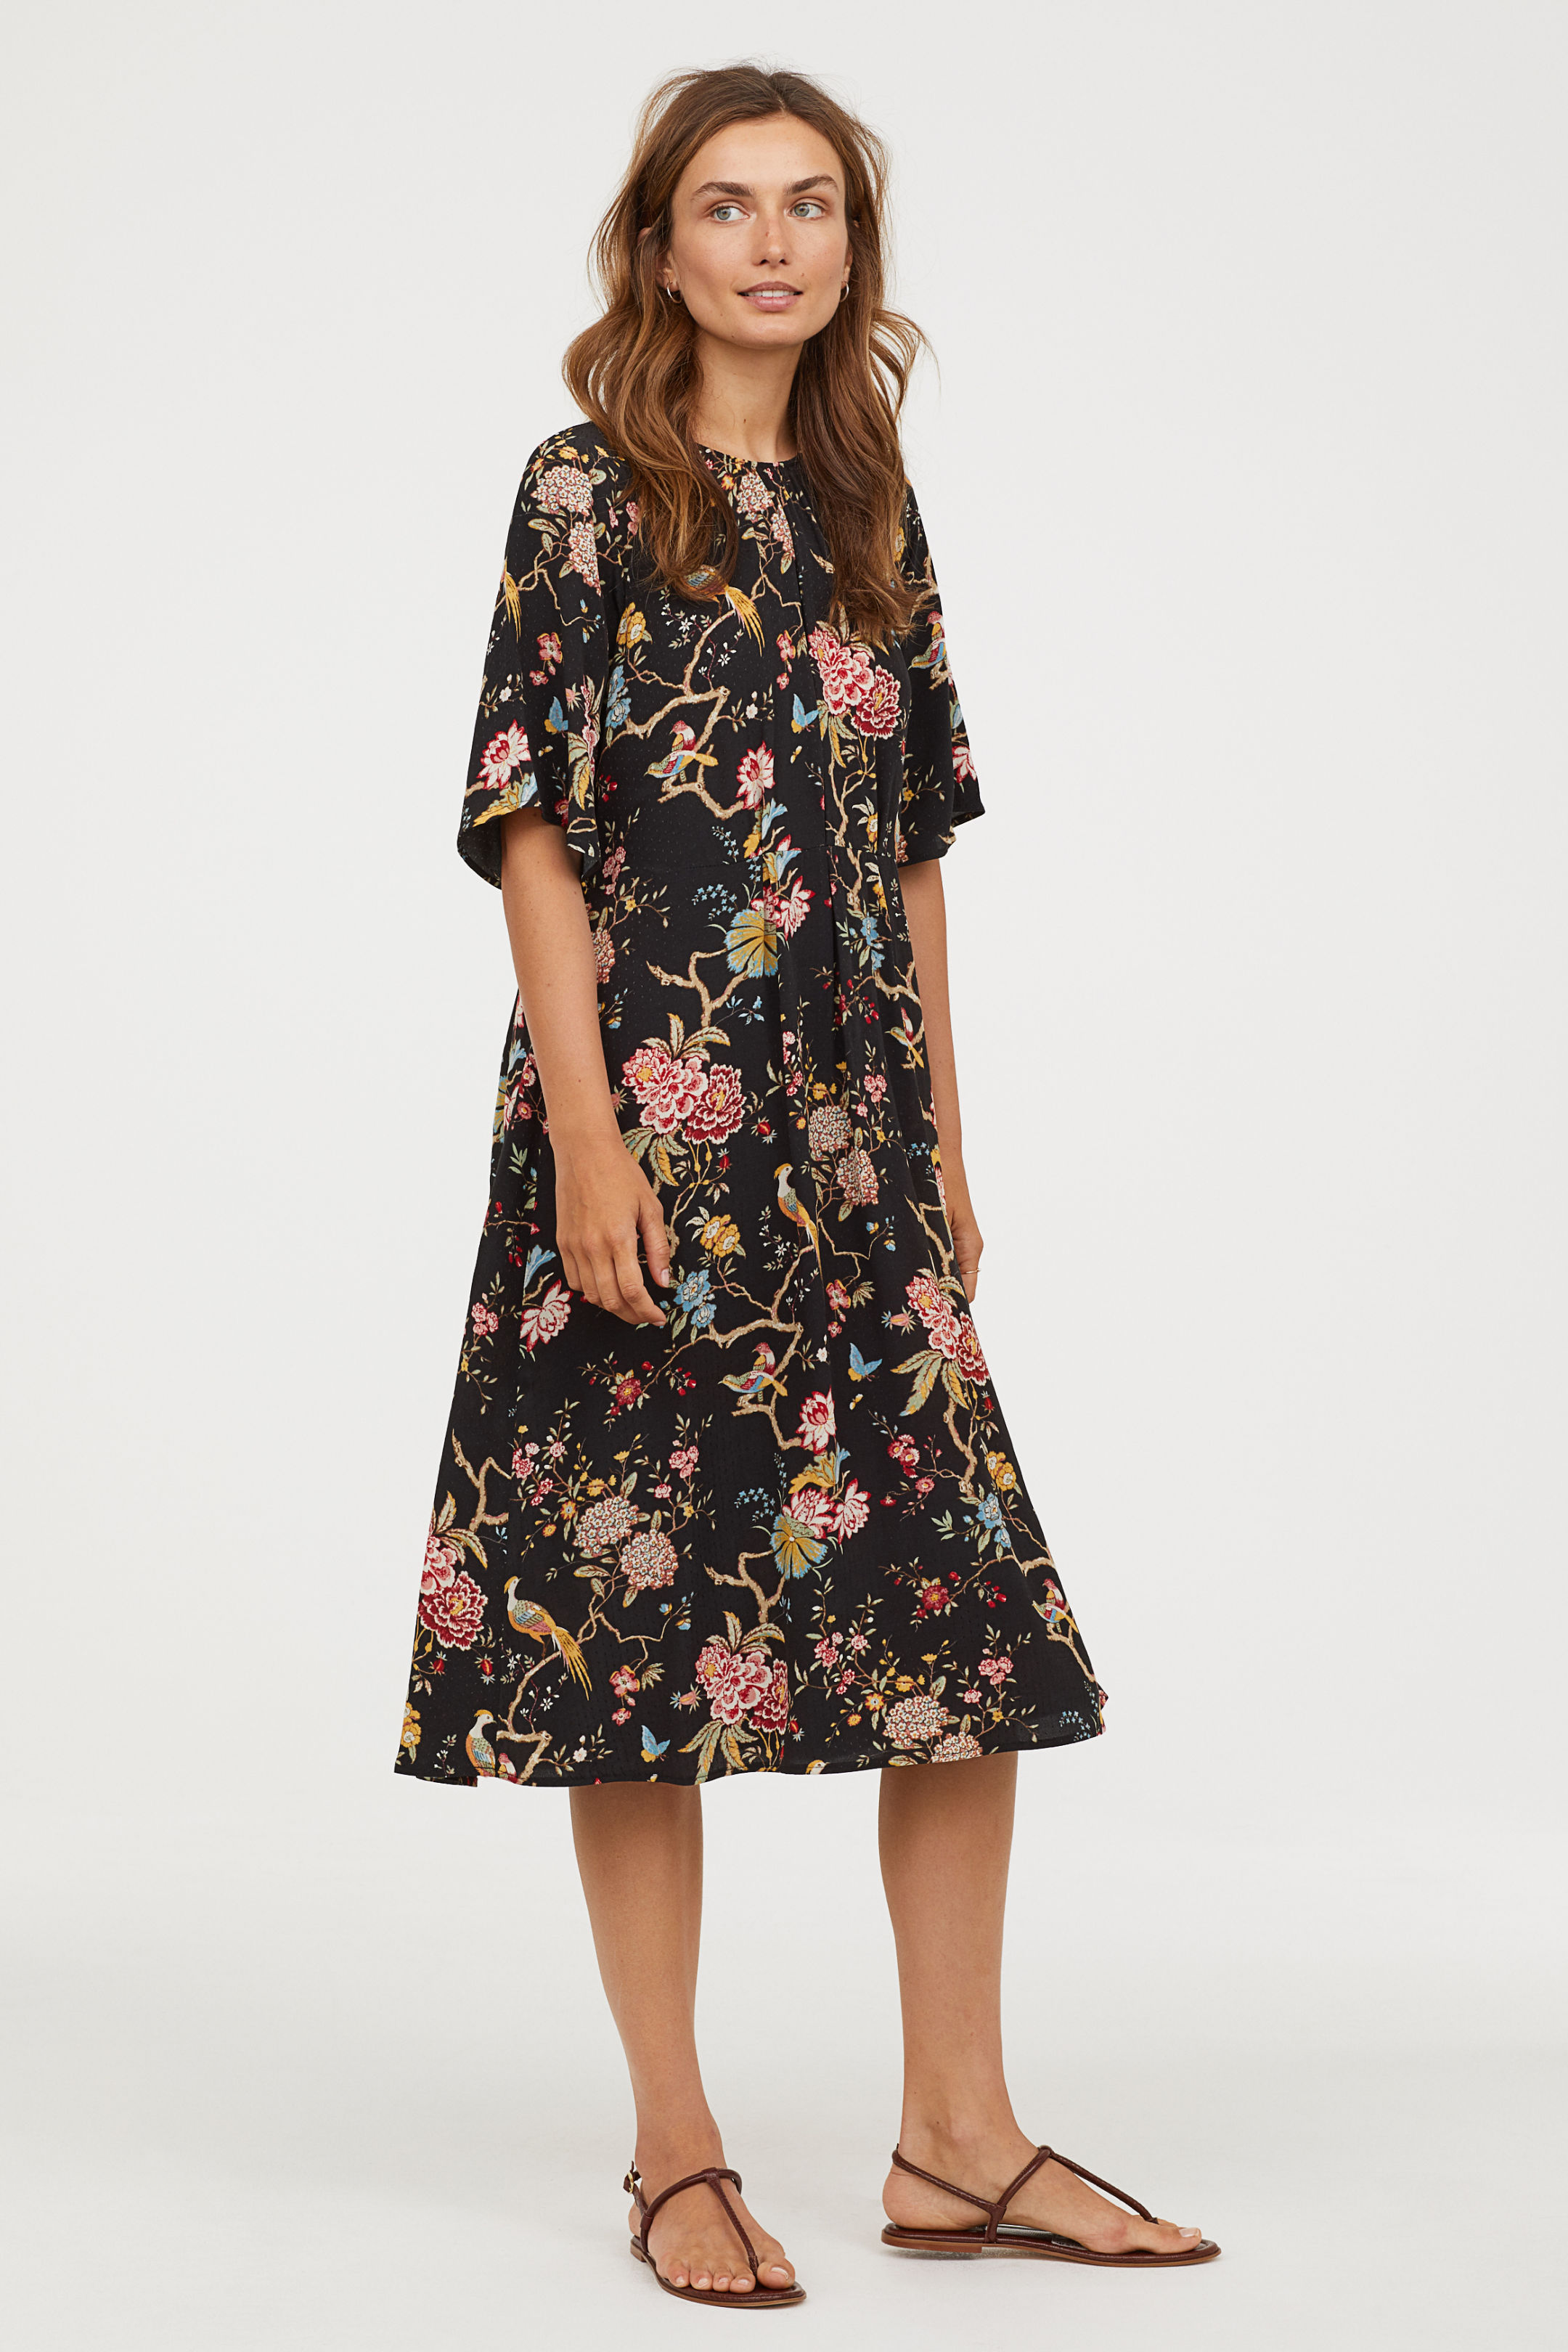 Black Floral Dress GP&J Baker for H&M